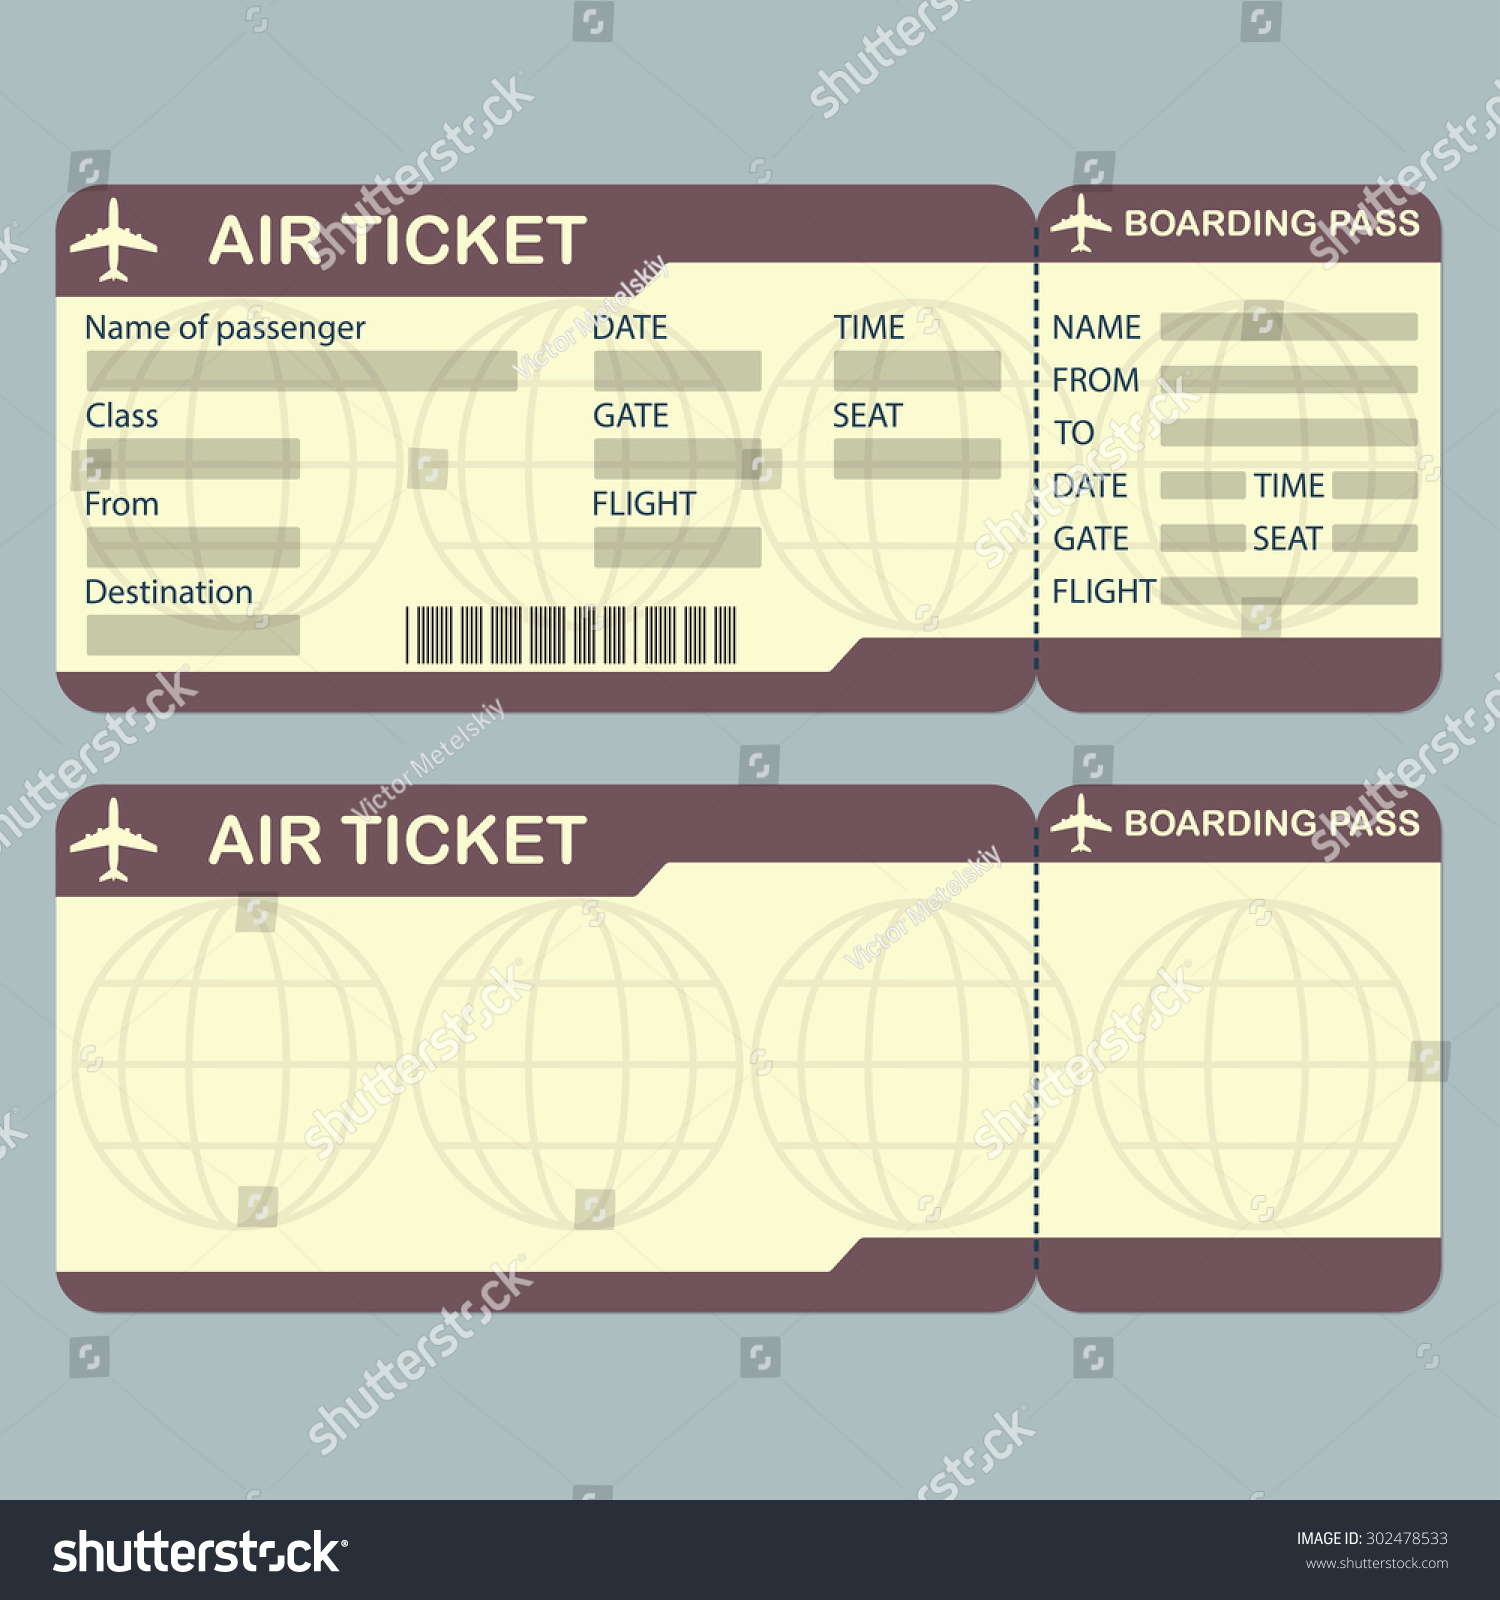 Blank airline ticket template airline boarding pass ticket template detailed blank of airplane pronofoot35fo Images